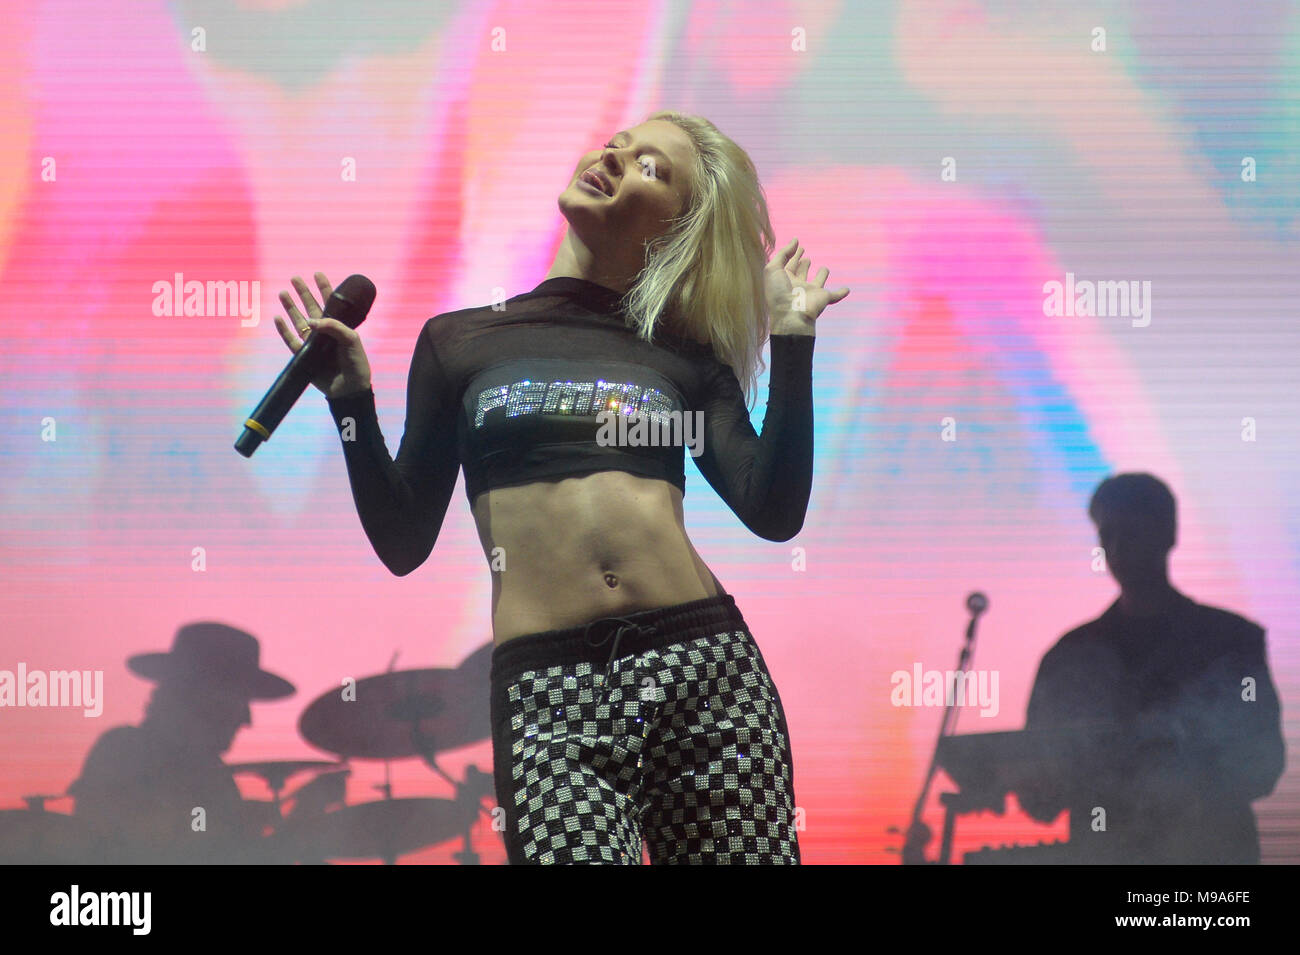 Sao Paulo, Brazil. 23rd March, 2018. Zara Larsson performs at the Lollapalooza 2018 festival, held at the Autodromo de Interlagos in São Paulo, on the afternoon of Friday, 23. (PHOTO: LEVI BIANCO/BRAZIL PHOTO PRESS) Credit: Brazil Photo Press/Alamy Live News - Stock Image